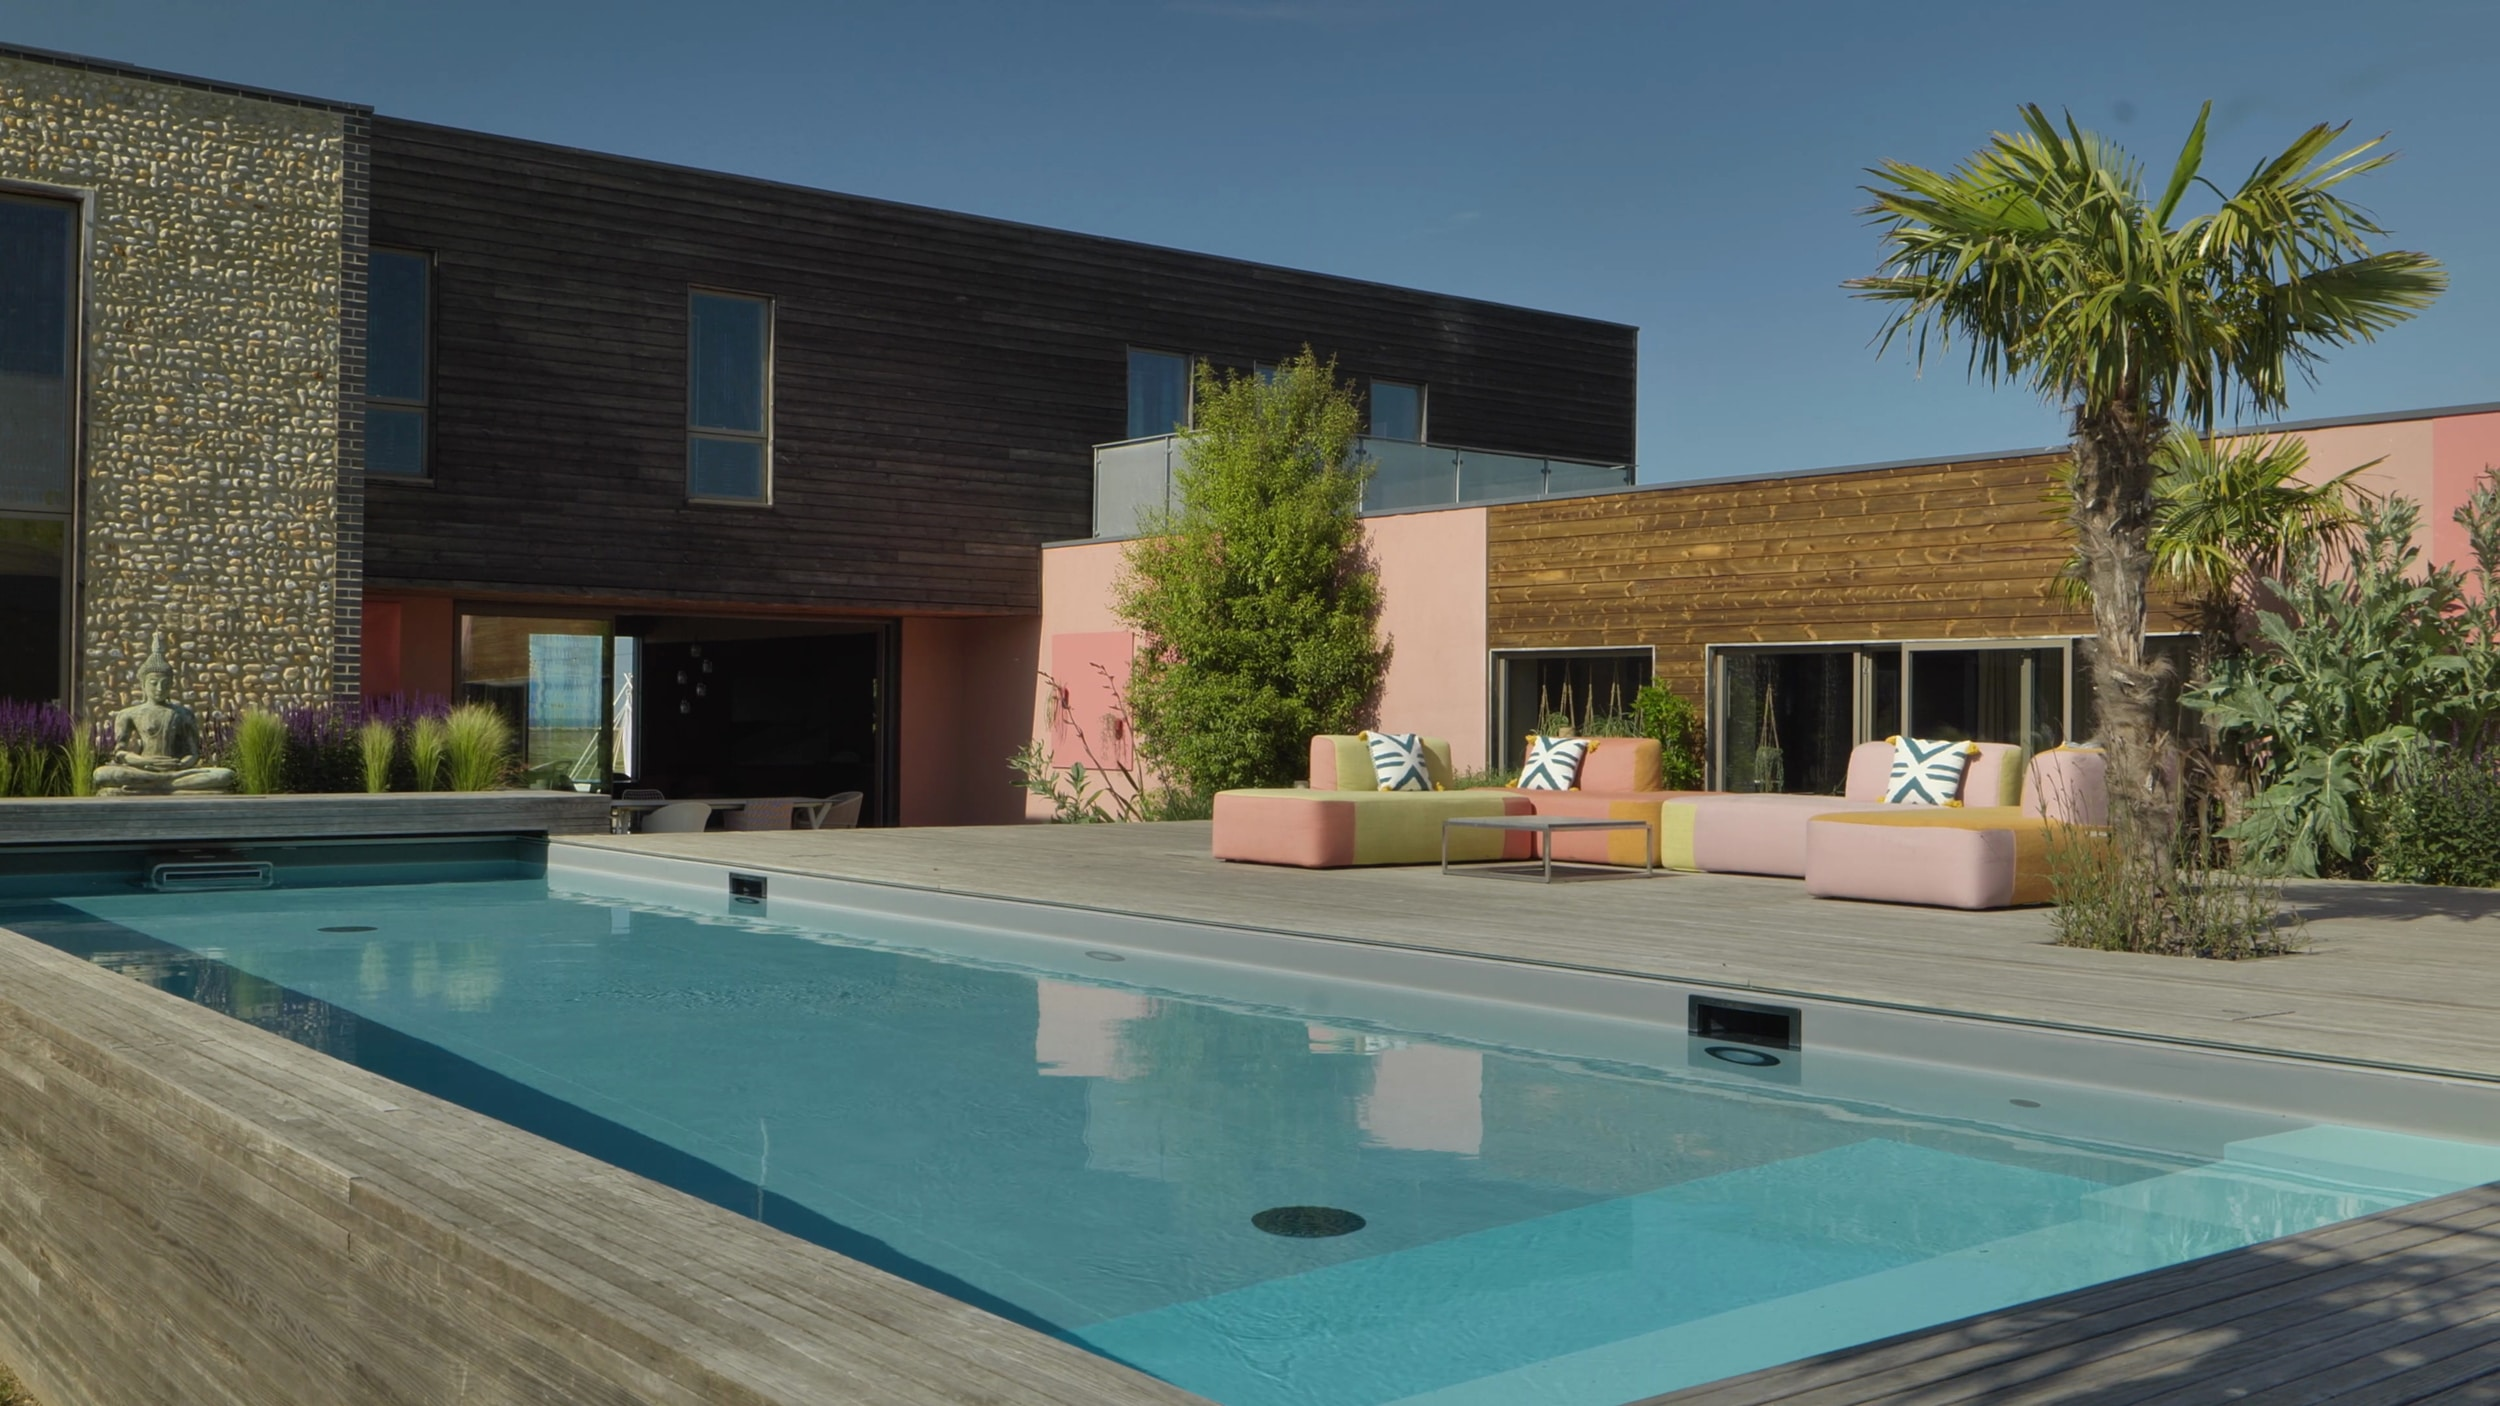 The Pool and Courtyard at Bliss Blakeney